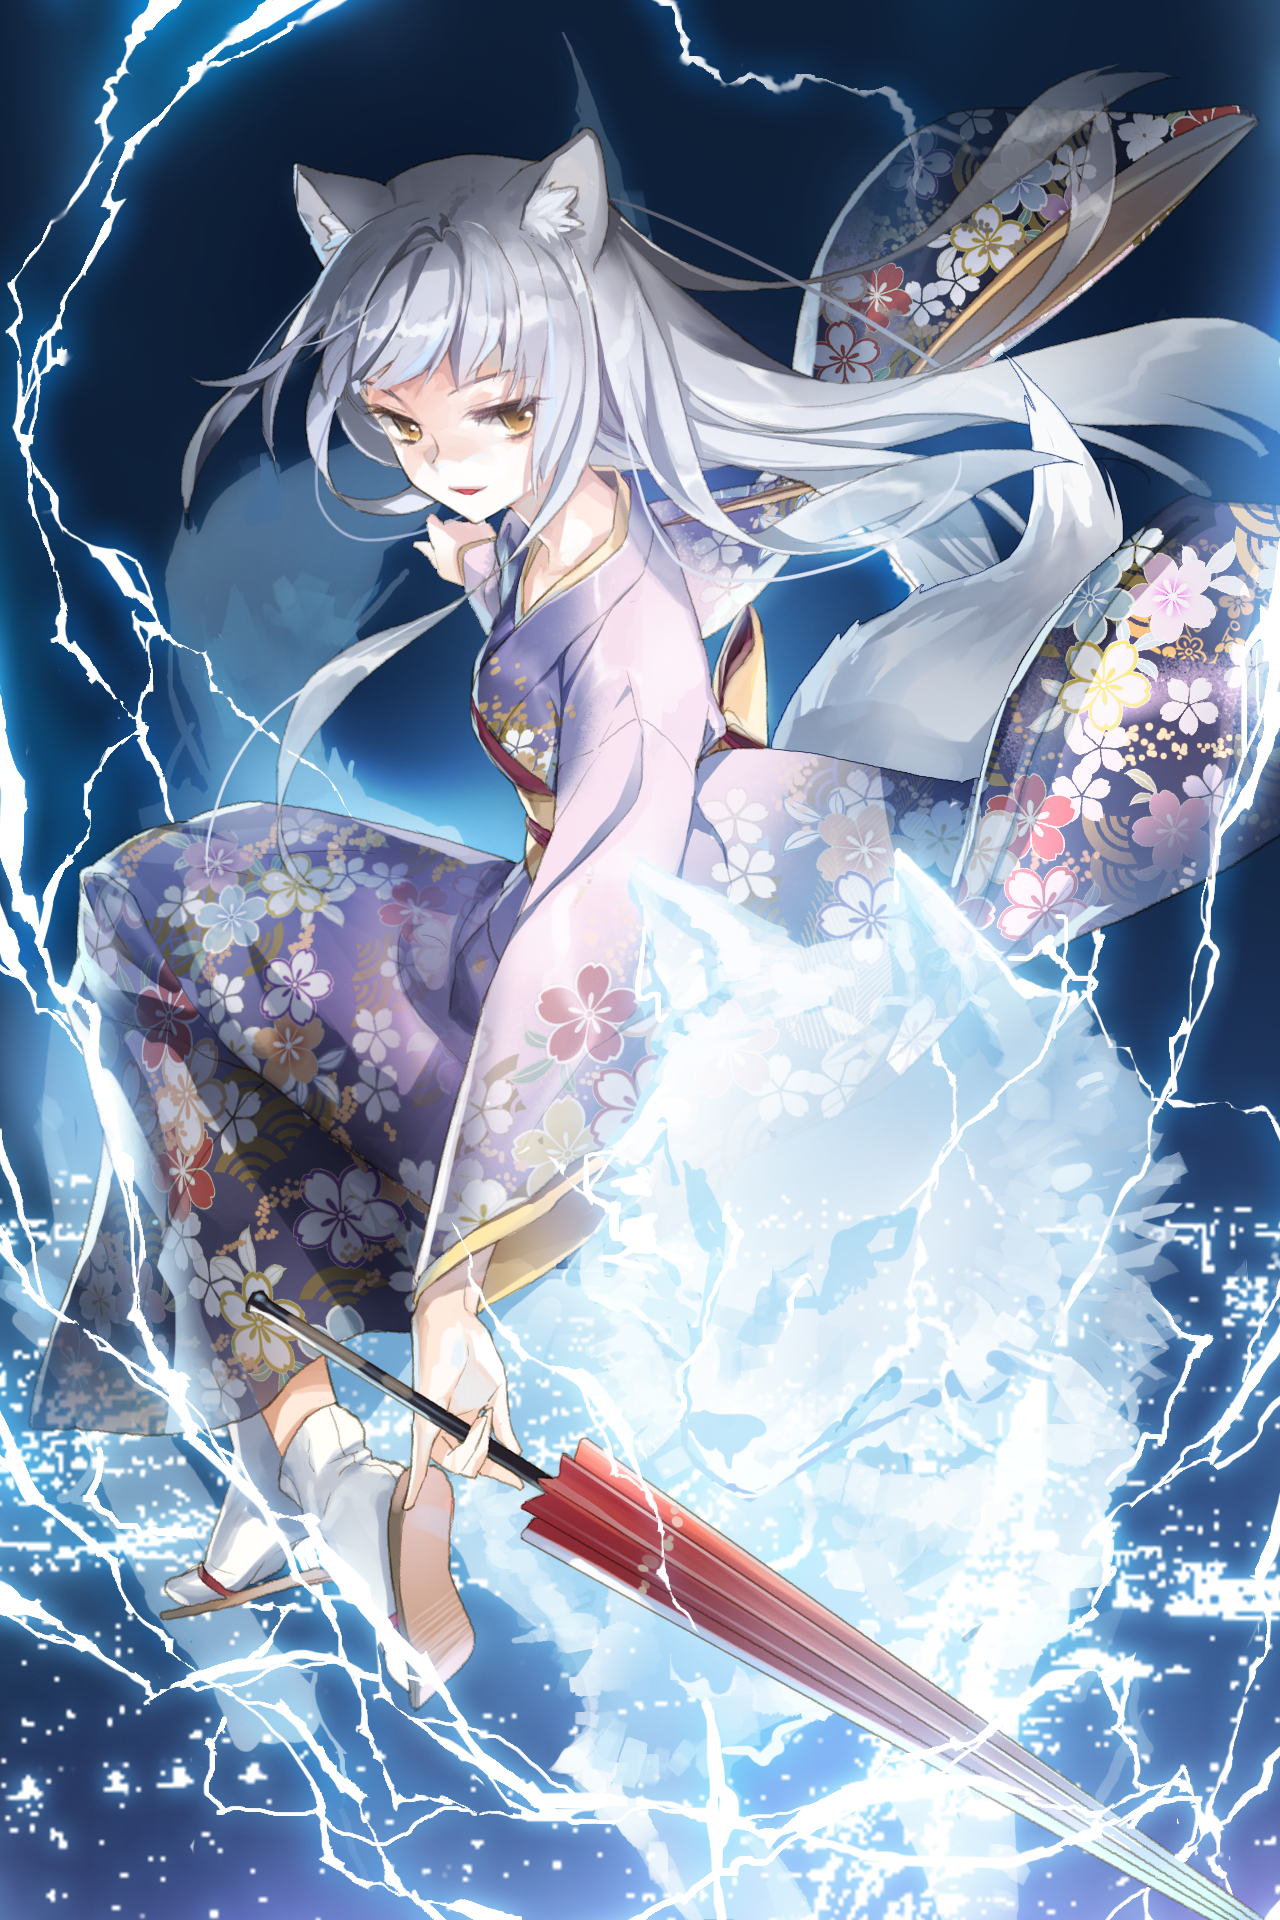 Name Mikono Talent Magic And Swords Power Personality Sassy Independent But Kind